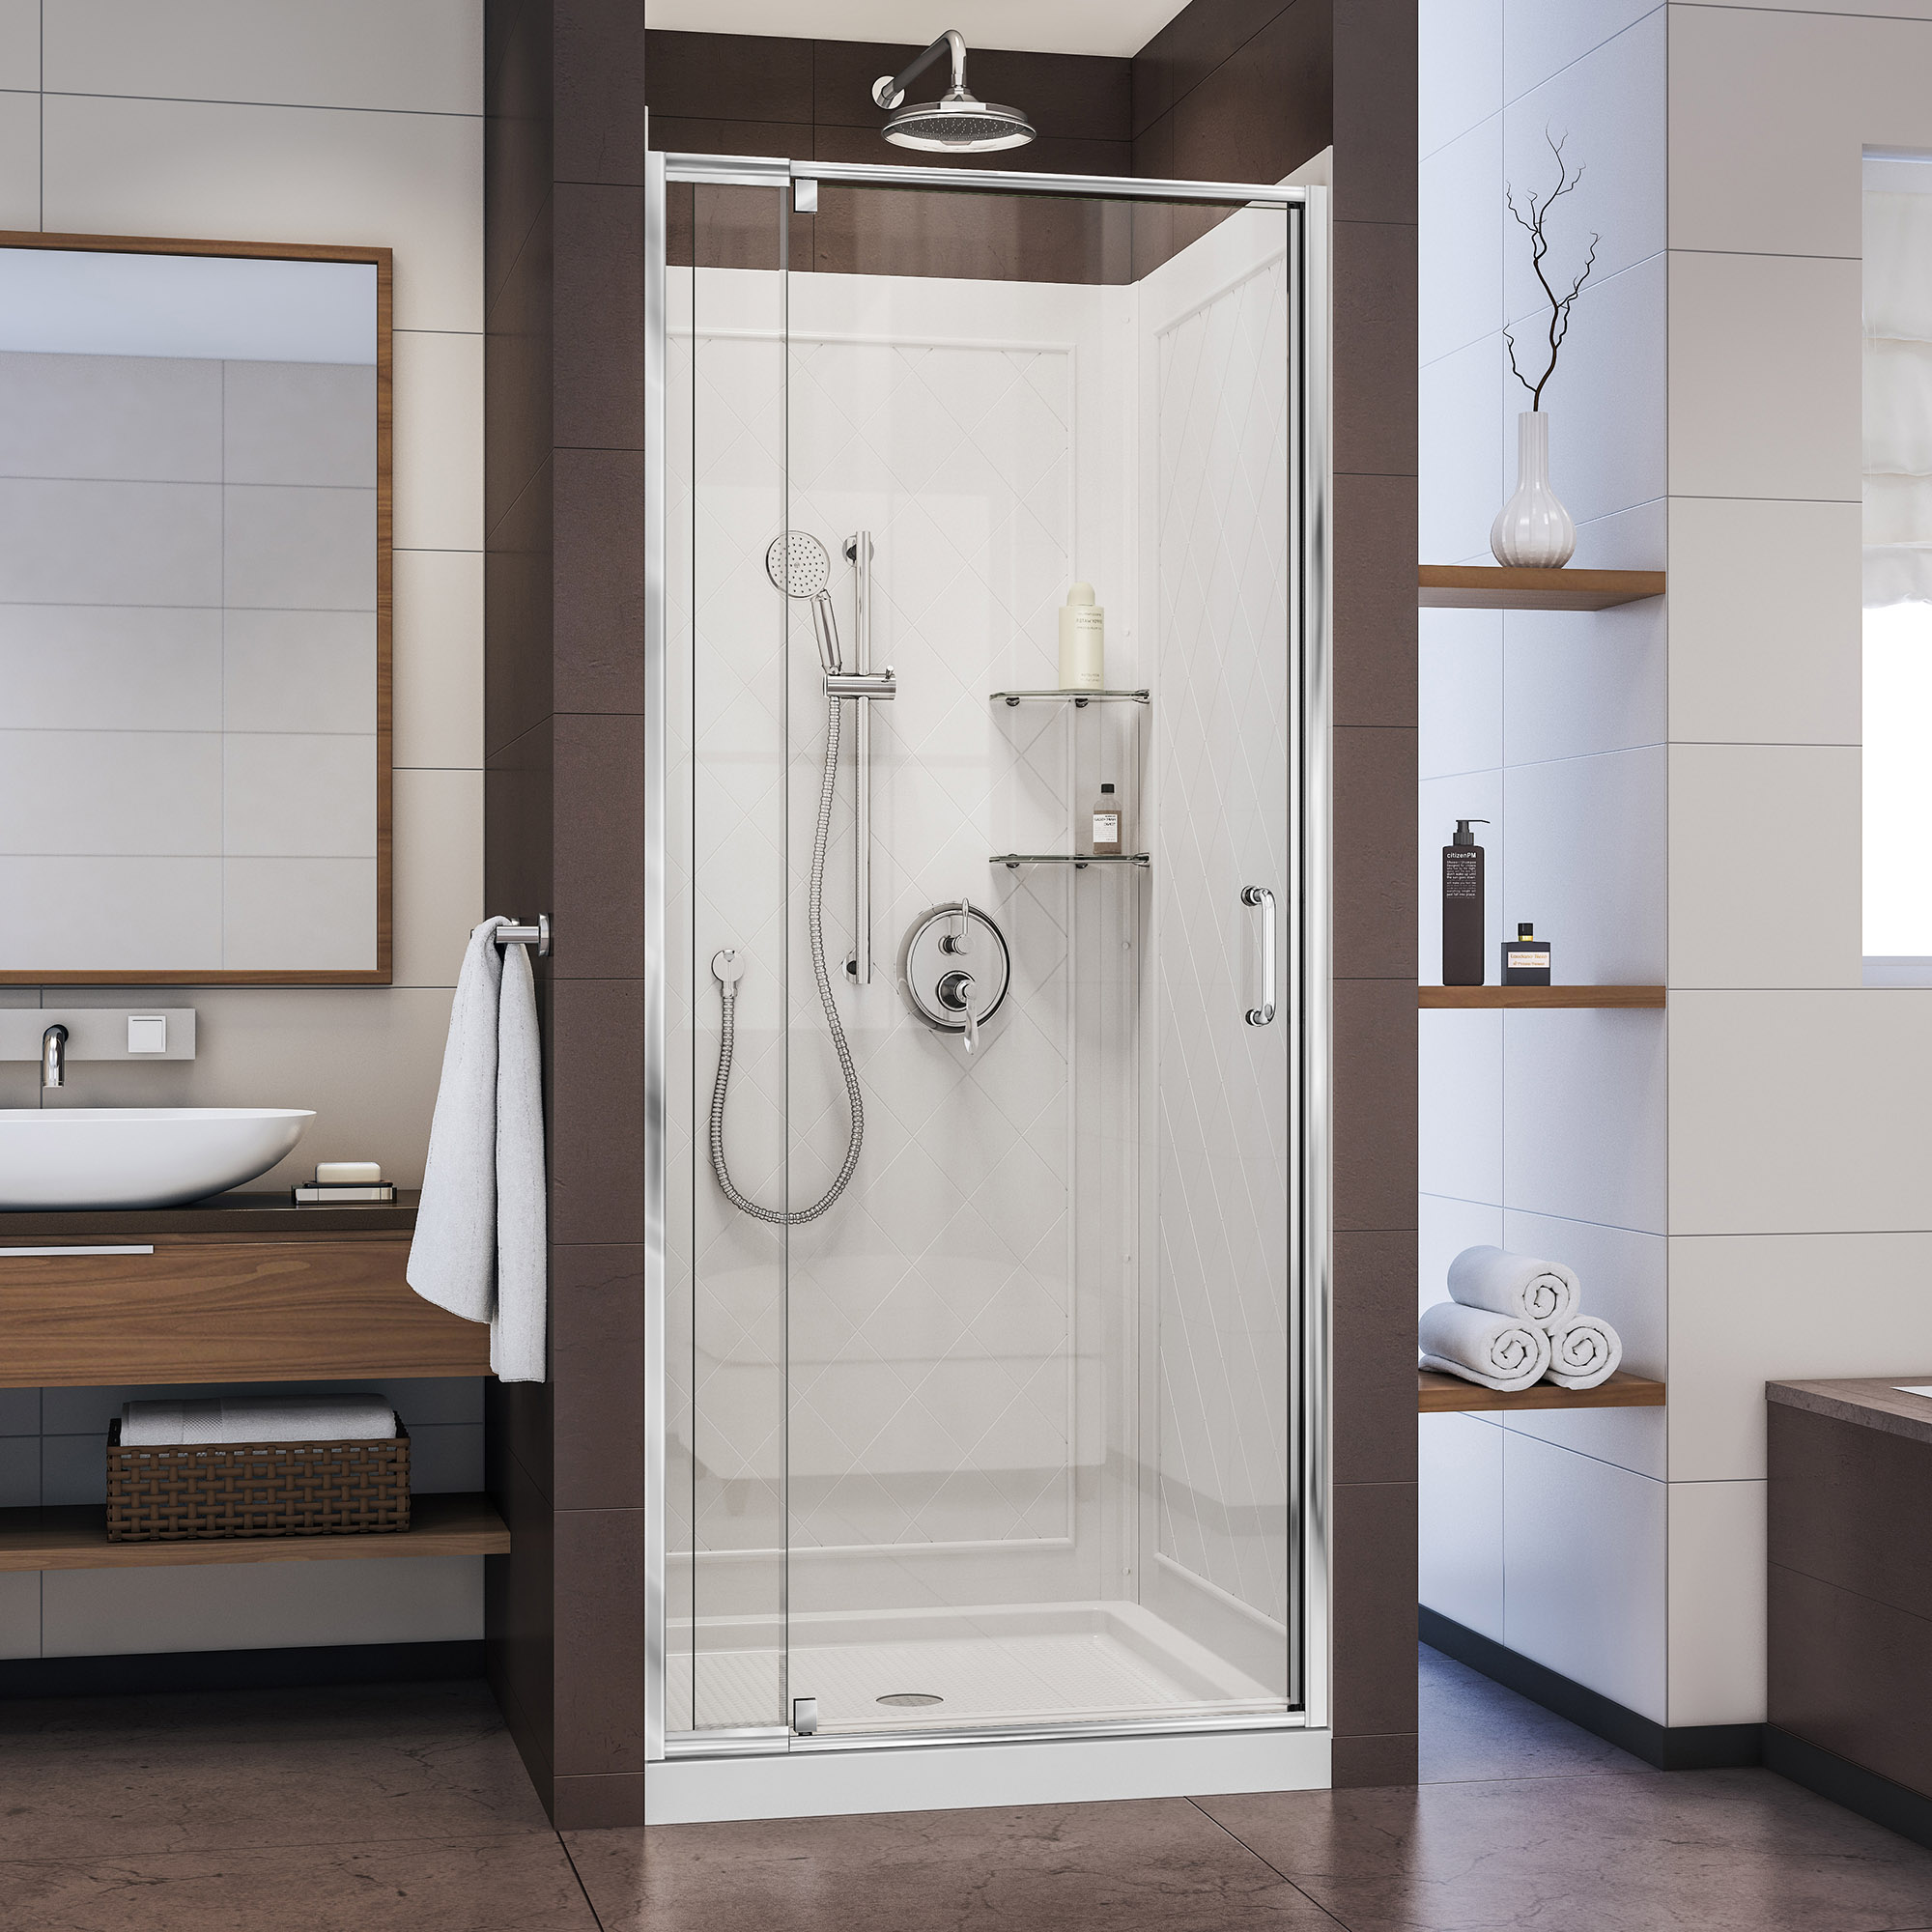 DreamLine Flex DL-6217C-01CL Pivot Shower Door in Chrome with White Base and Backwalls